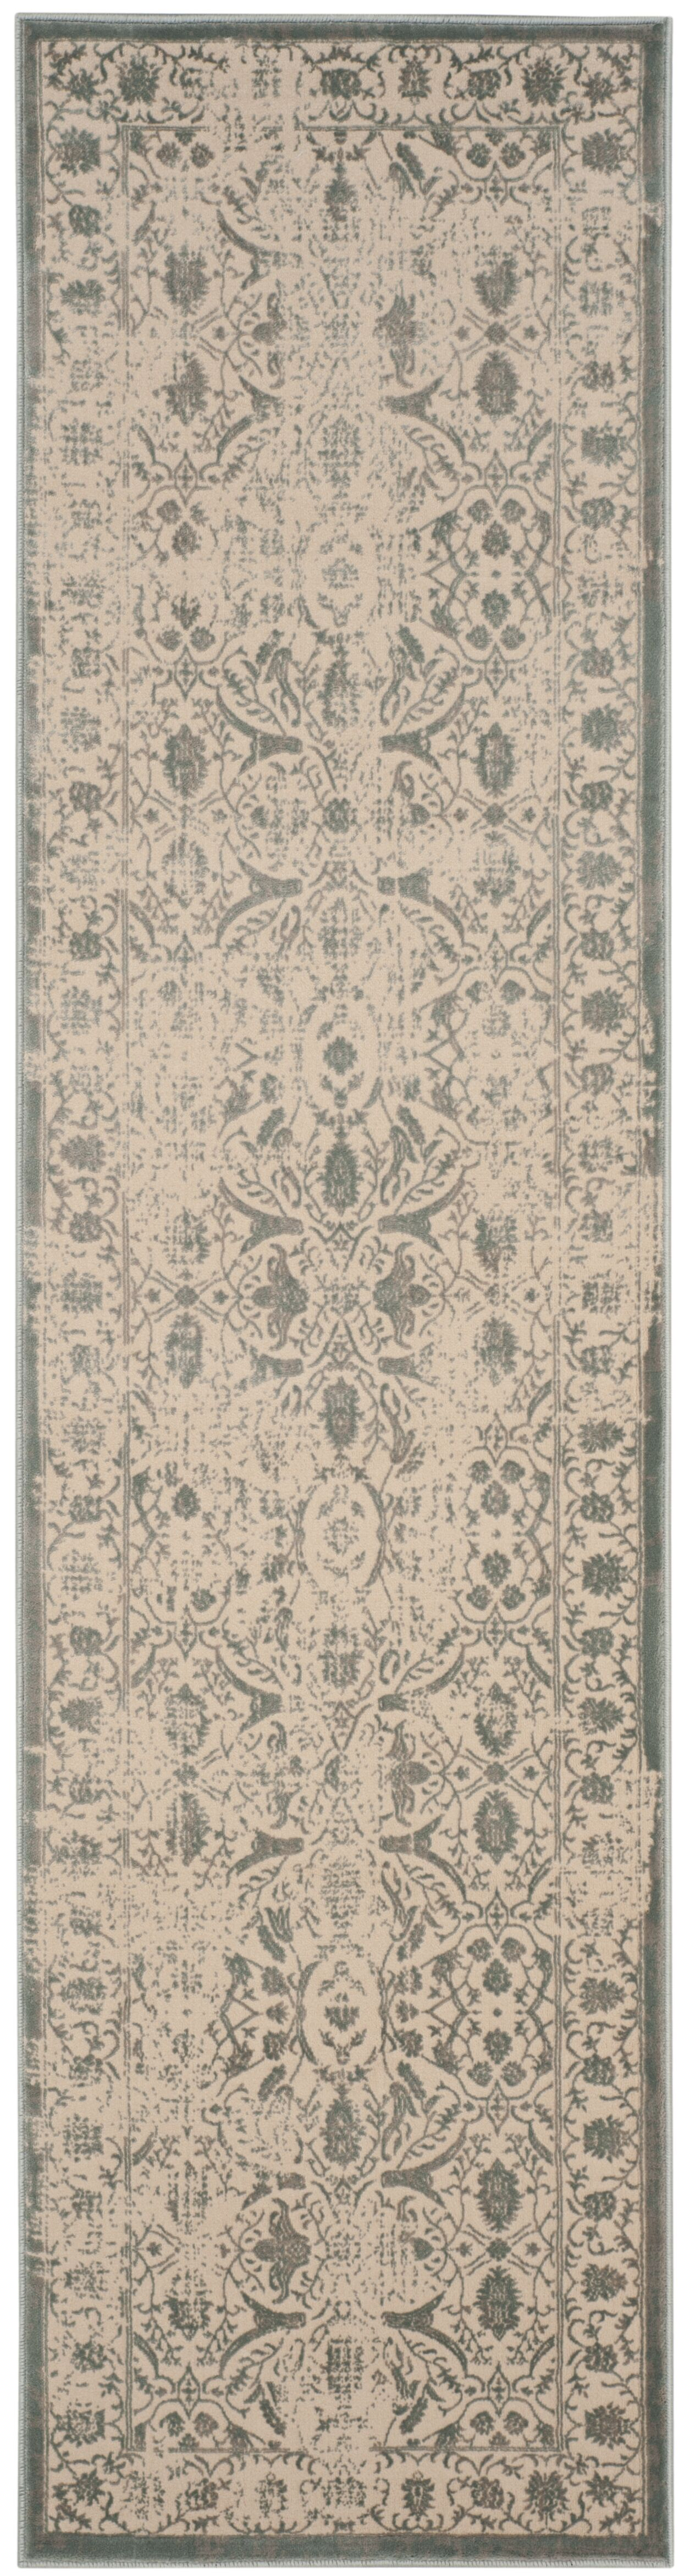 Cathy Cream/Sage Area Rug Rug Size: Runner 2'2